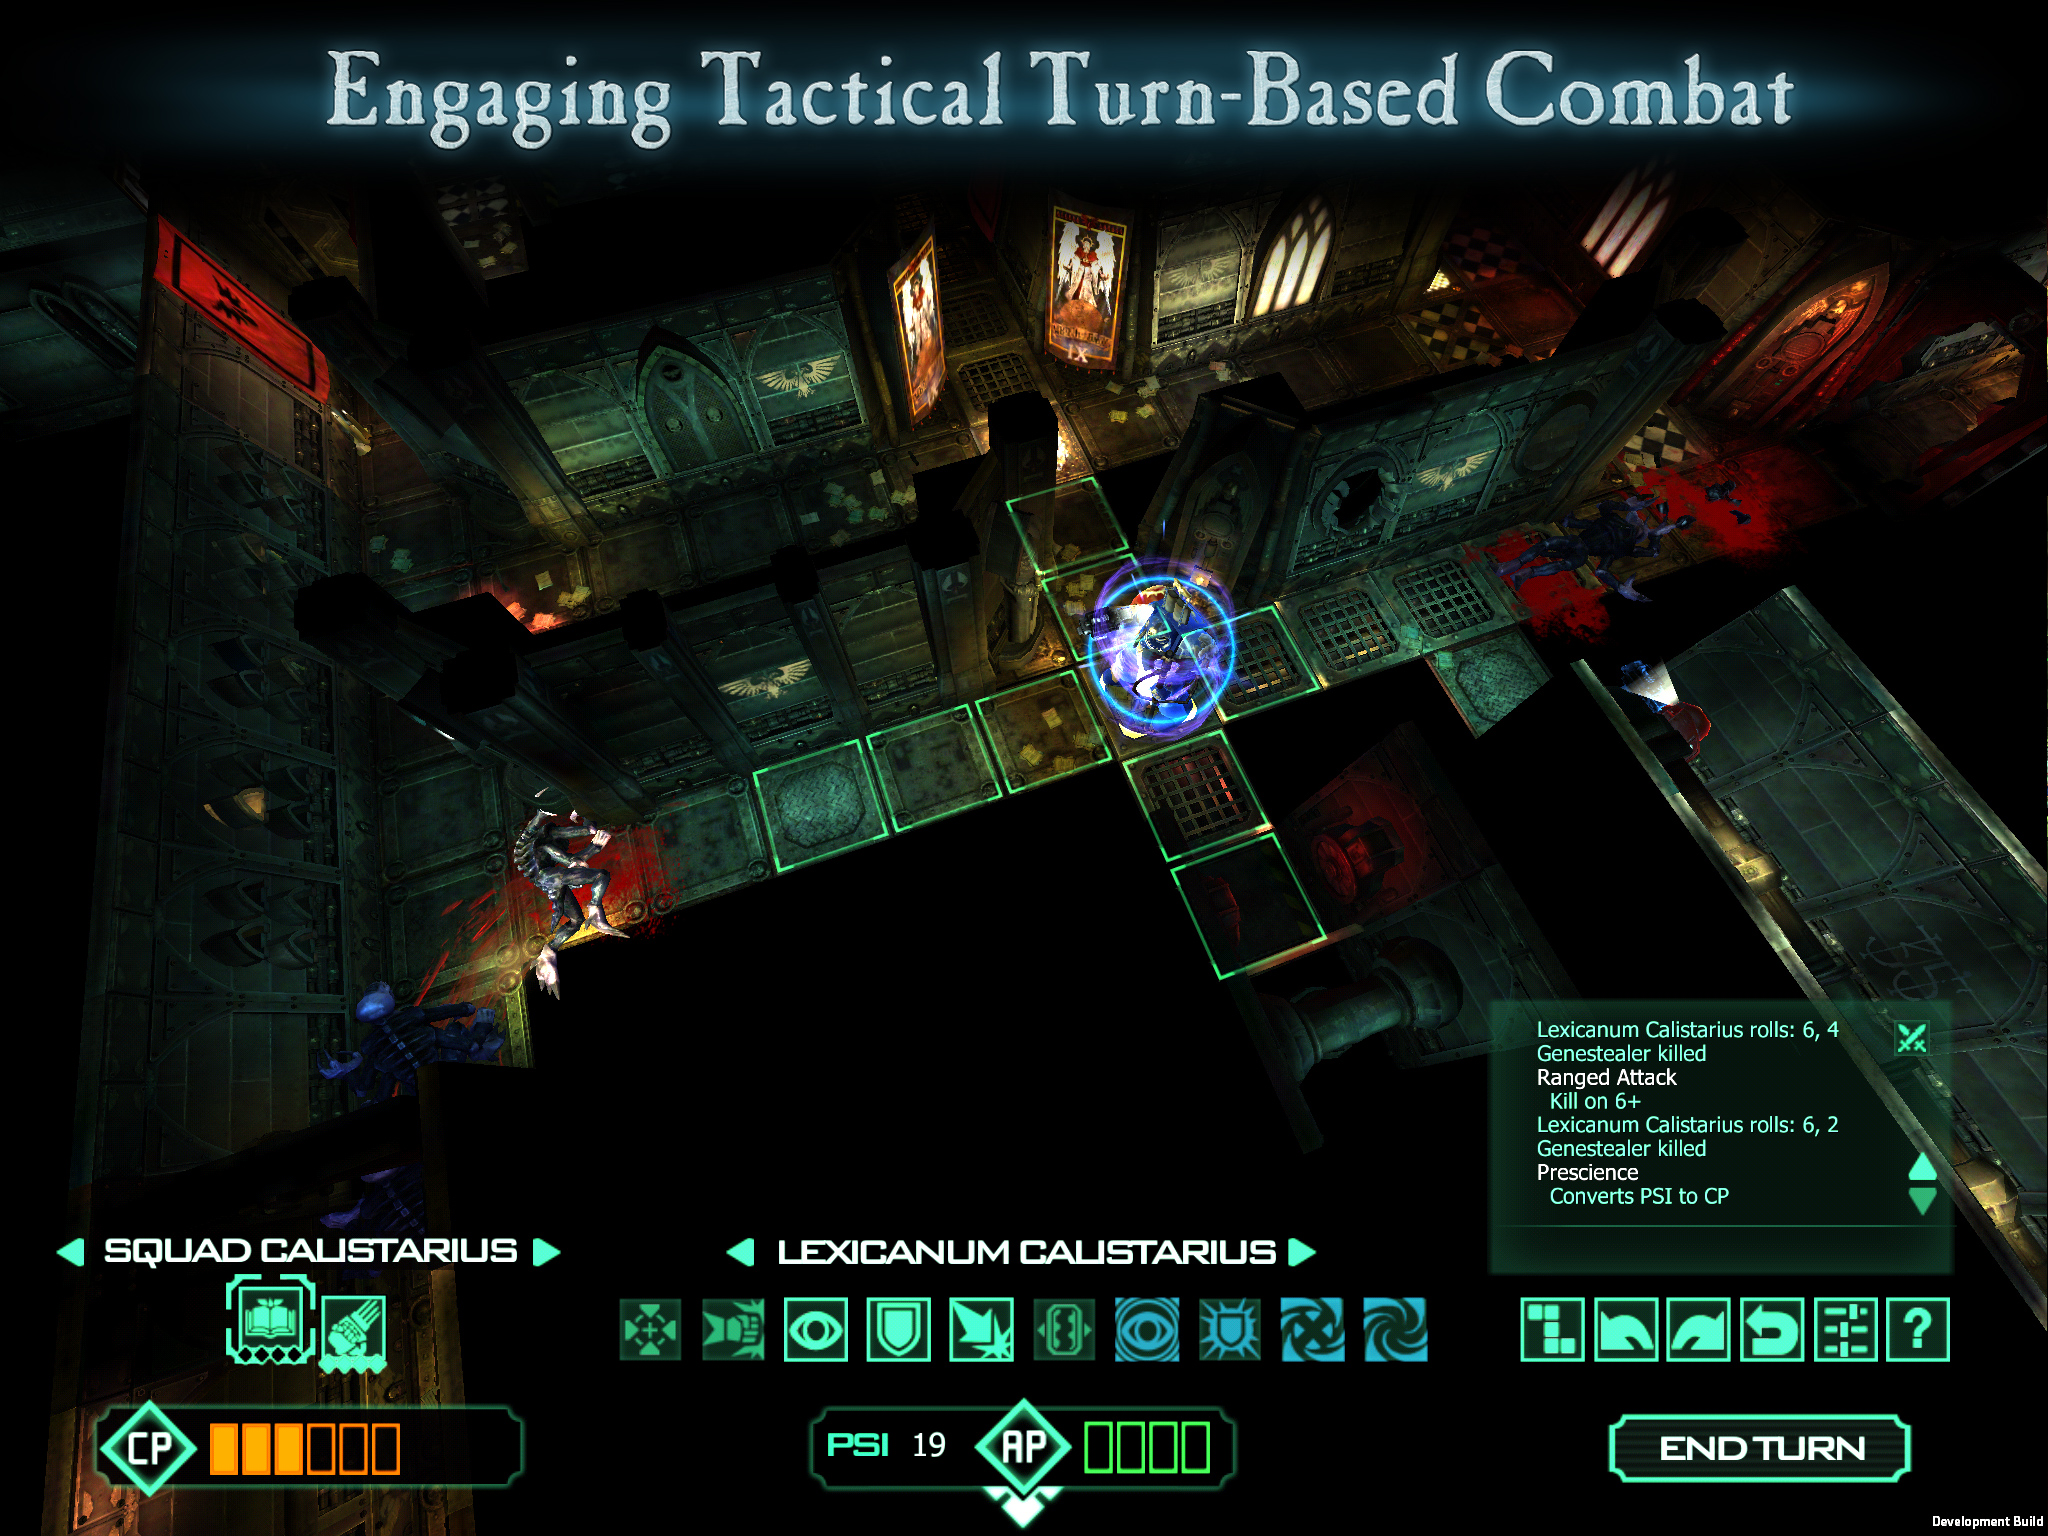 Out at midnight: Battle ferocious aliens and your friends in turn-based tactical combat in Space Hulk for iPad